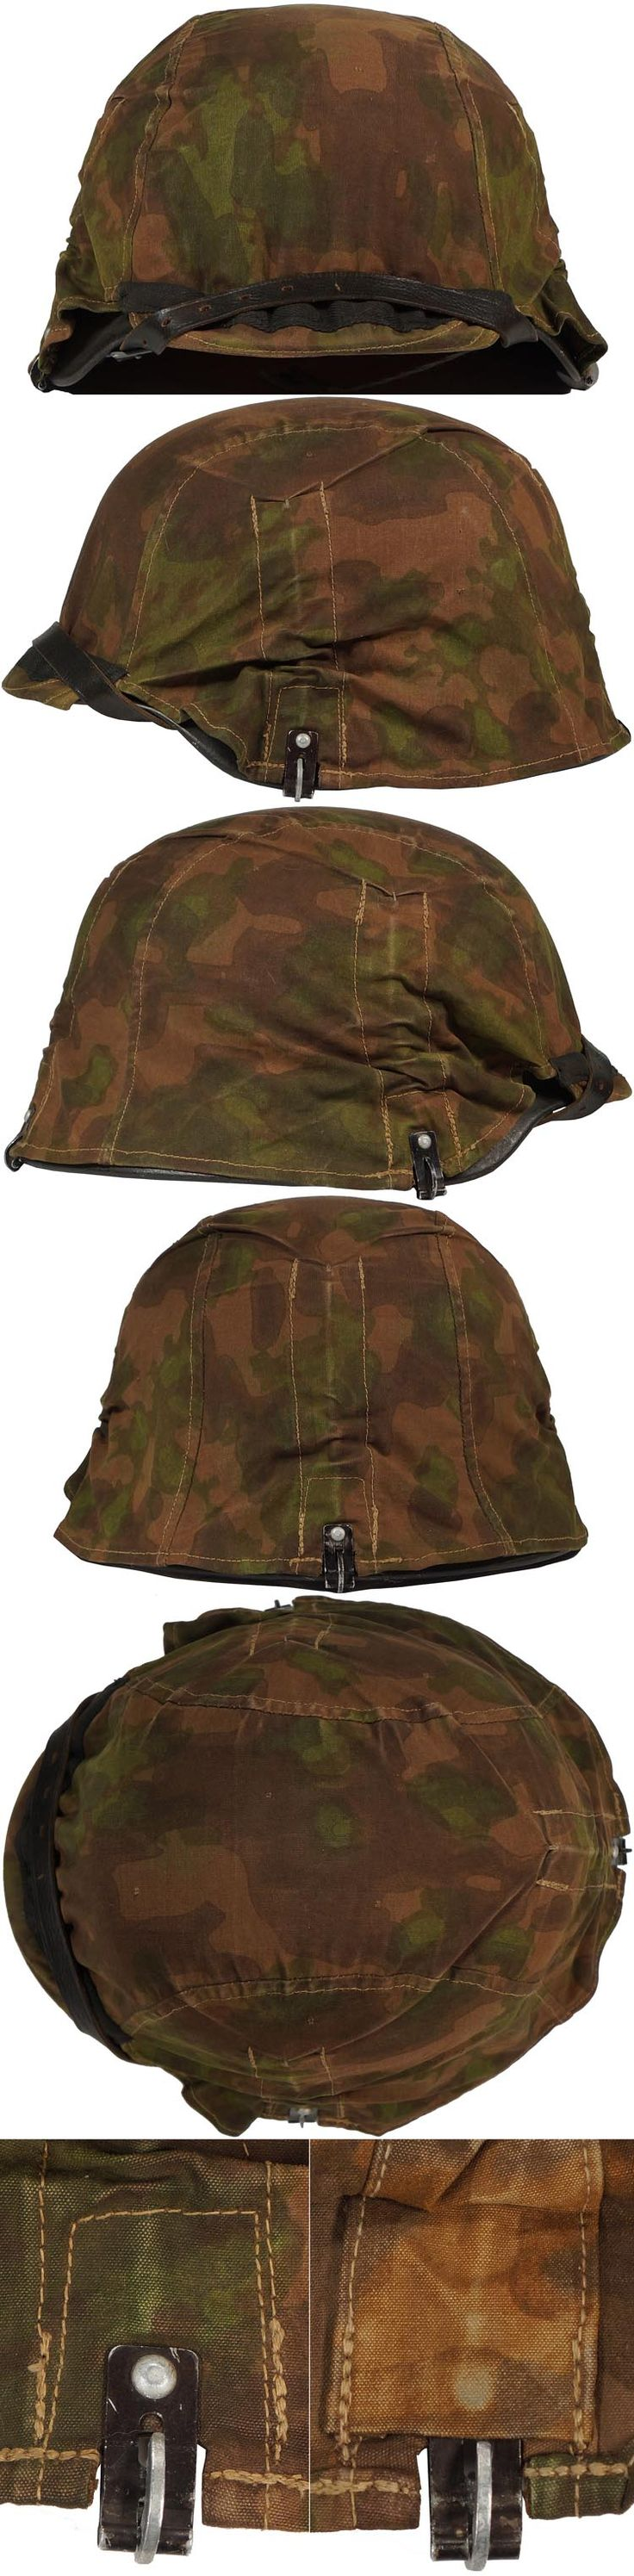 """Original SS """"BLURRED EDGE"""" CAMOUFLAGE HELMET COVER. (Stahlhelmbezüge)  Check out my website for more original WW2 items: http://www.vantiques.nl"""